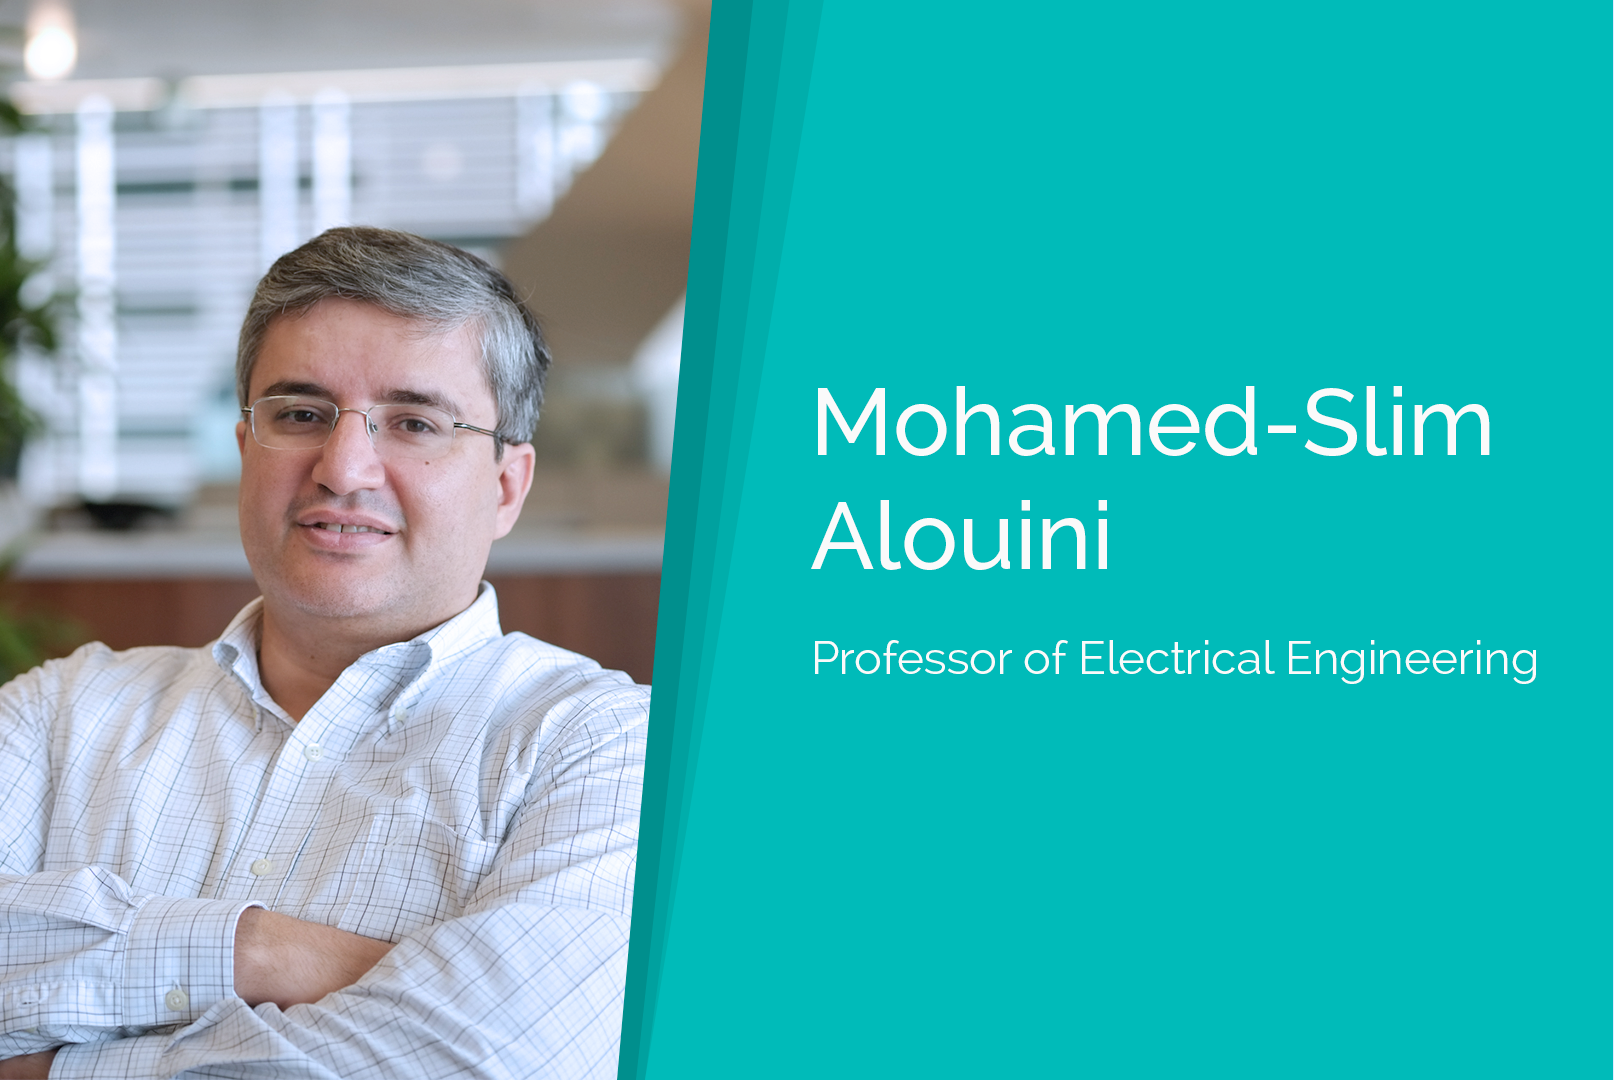 Mohamed-Slim Alouini honored at OIC Summit